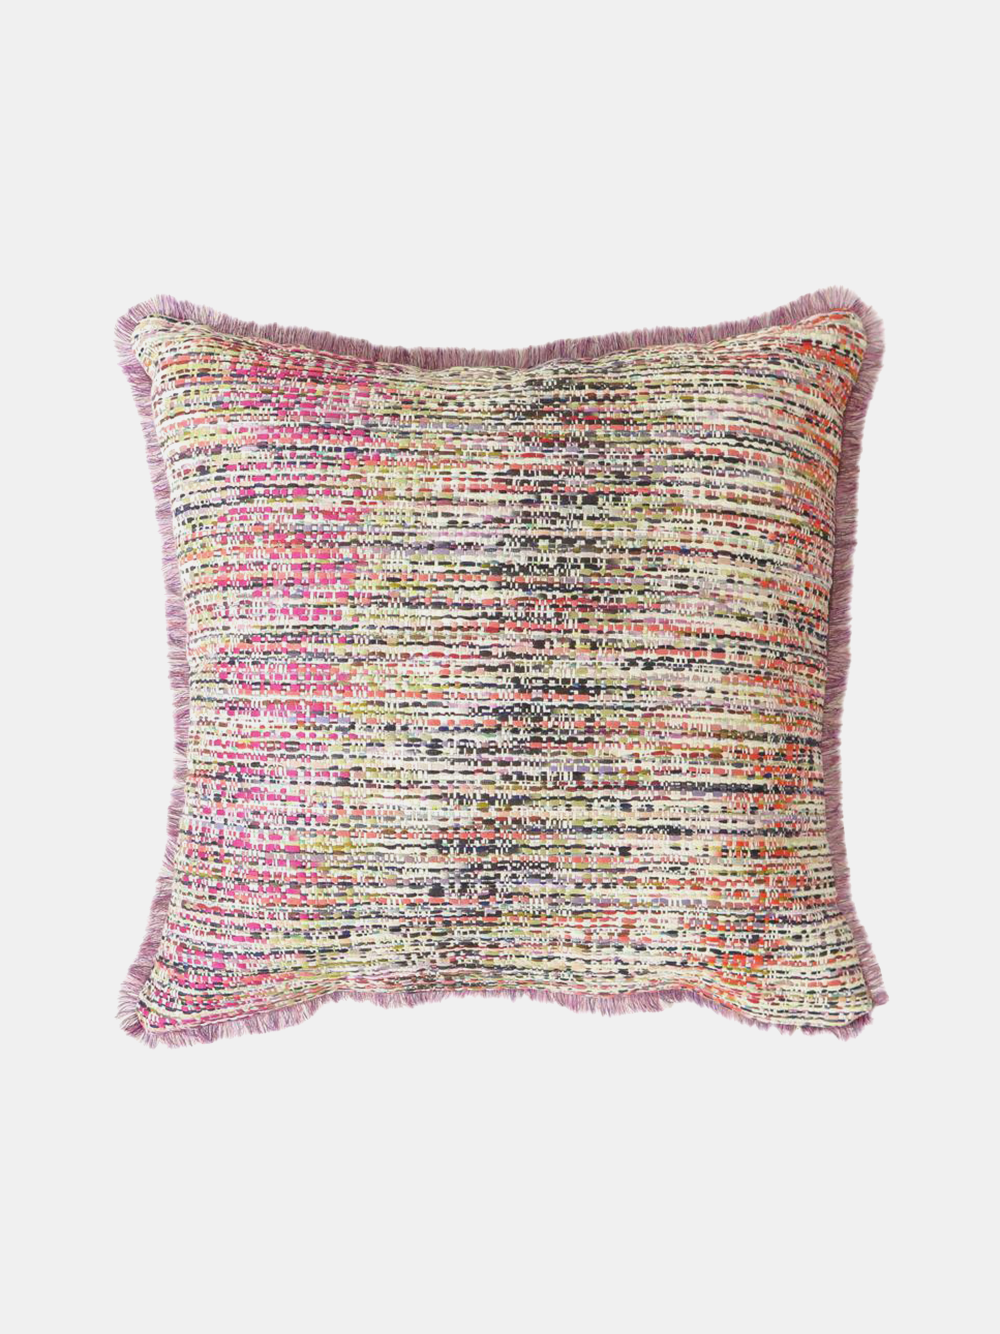 tapestry throw pillow in pink confetti tweed